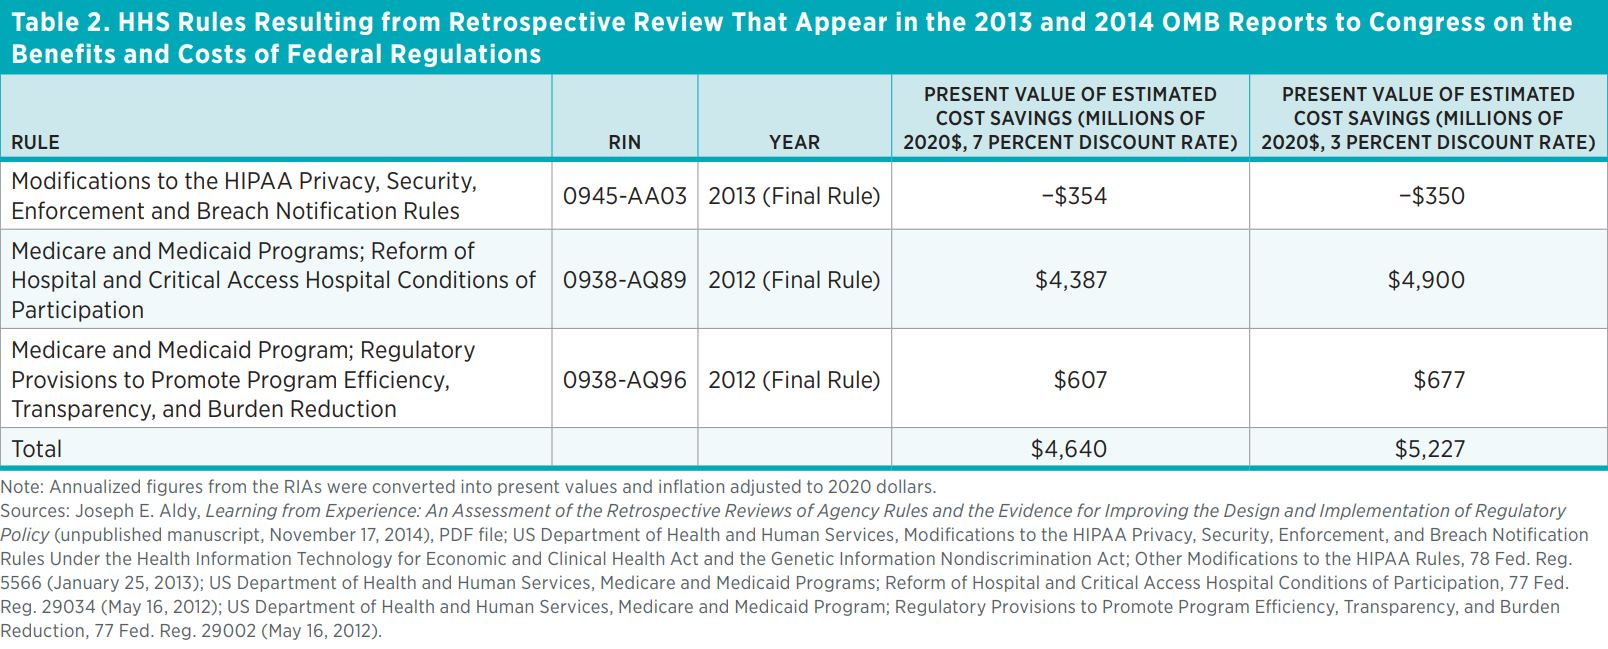 Table 2. HHS Rules Resulting from Retrospective Review That Appear in the 2013 and 2014 OMB Reports to Congress on the Benefits and Costs of Federal Regulations   Rule  RIN  Year  Present Value of Estimated Cost Savings (Millions of 2020$, 7 Percent Disco